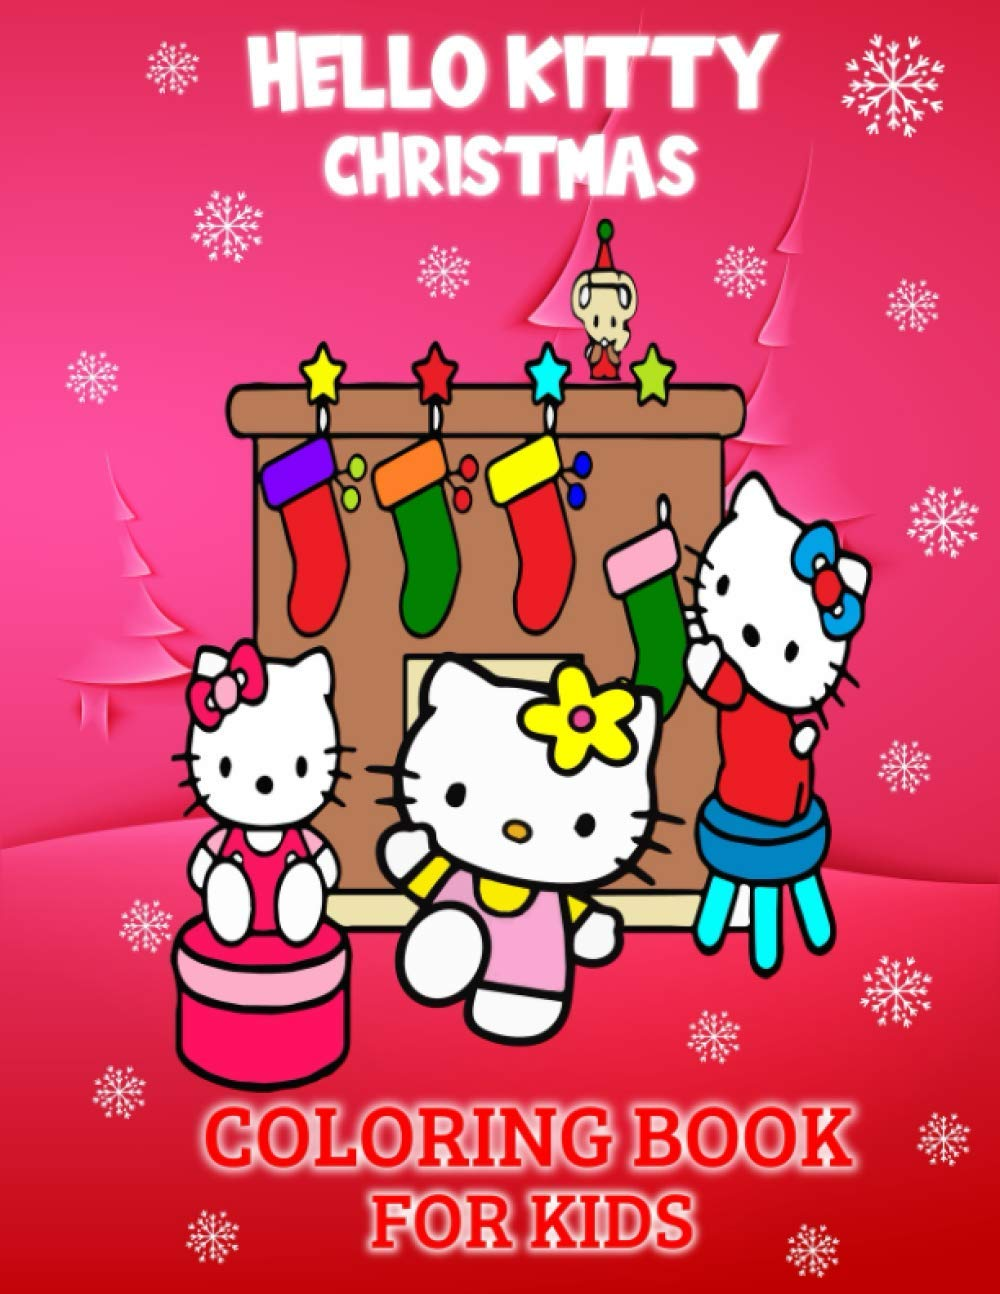 Hello Kitty Christmas Coloring Book For Kids Unique Gifts Of Christmas For Kids Who Are Hello Kitty Lovers 74 Pages Cute Designs To Color Prints Dreams 9798696902708 Amazon Com Books